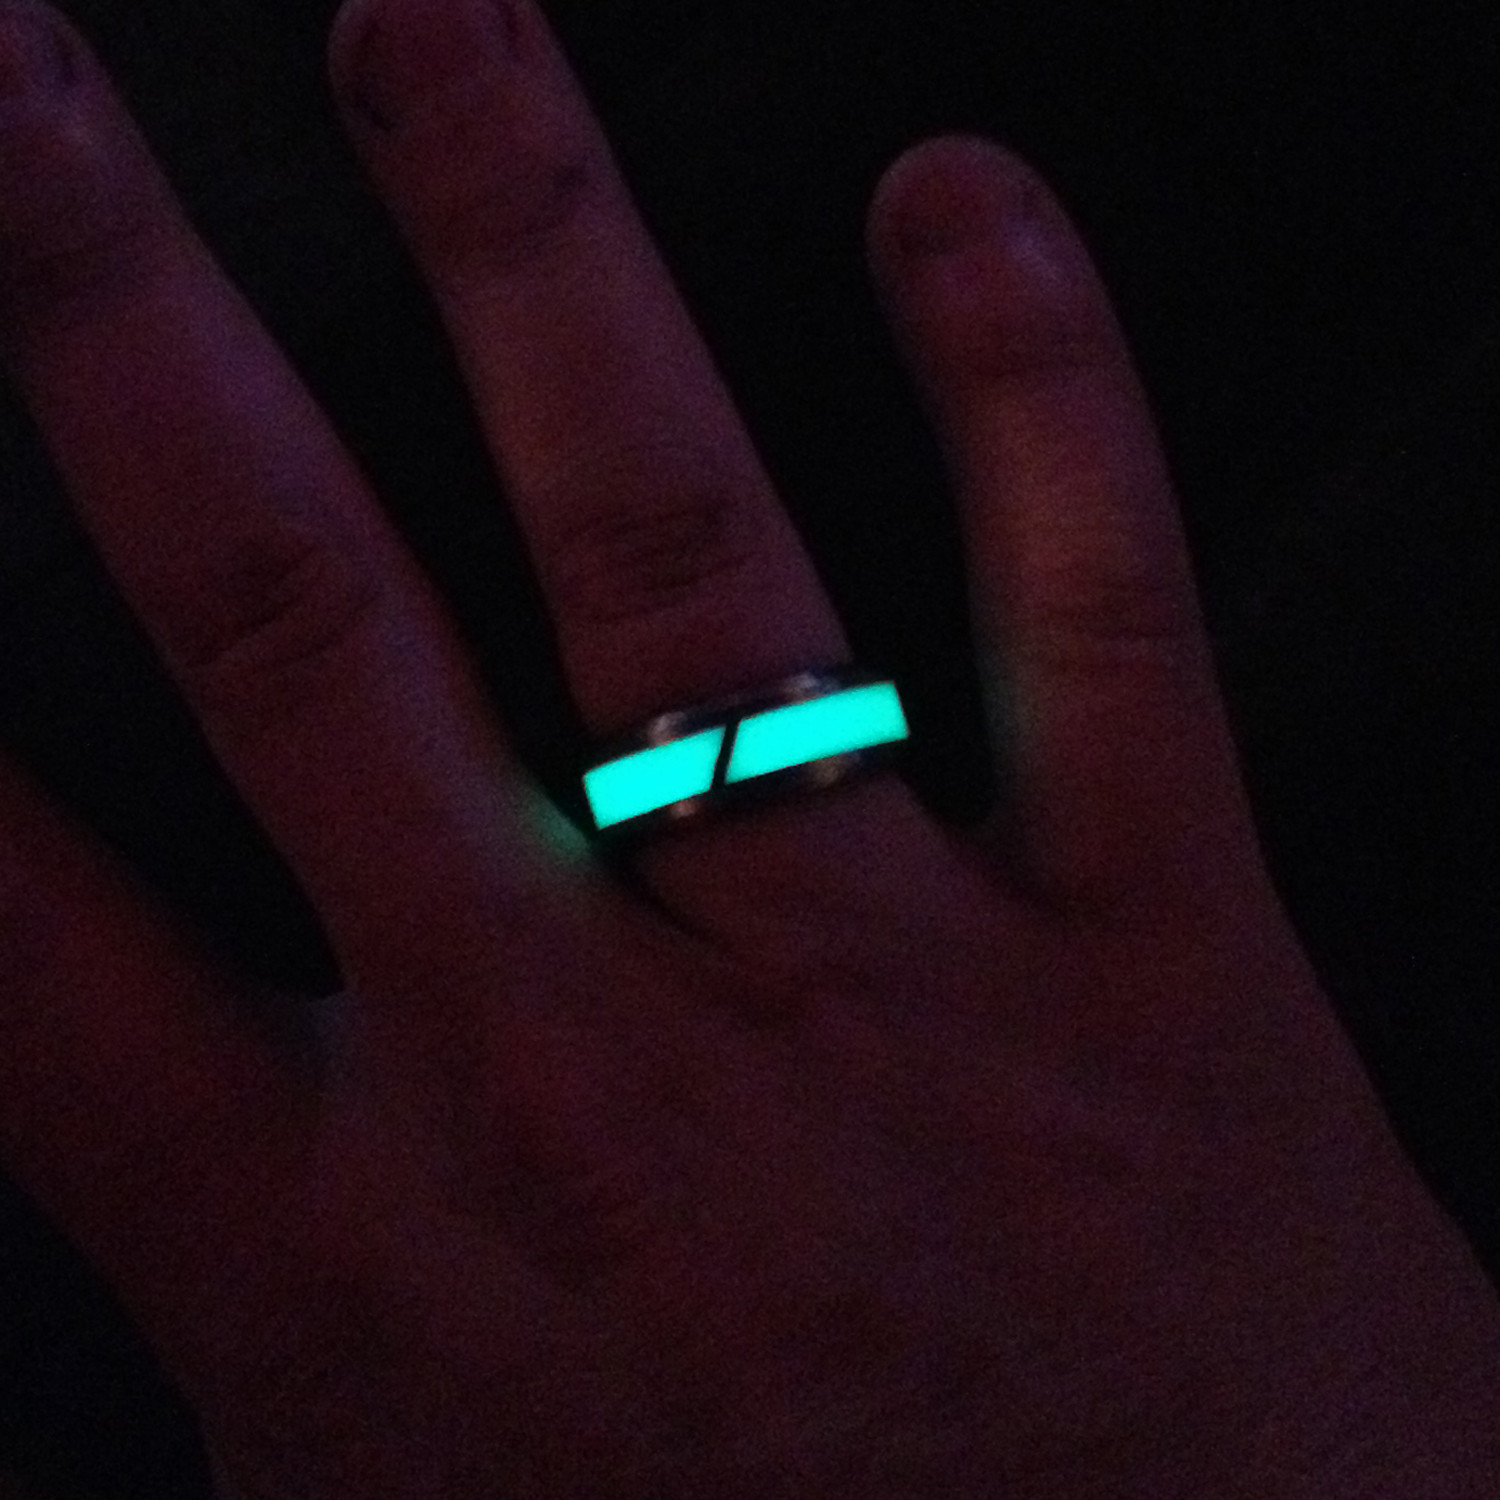 lume ring rings fiber gzktroe imgur forged com pics comments r carbon i